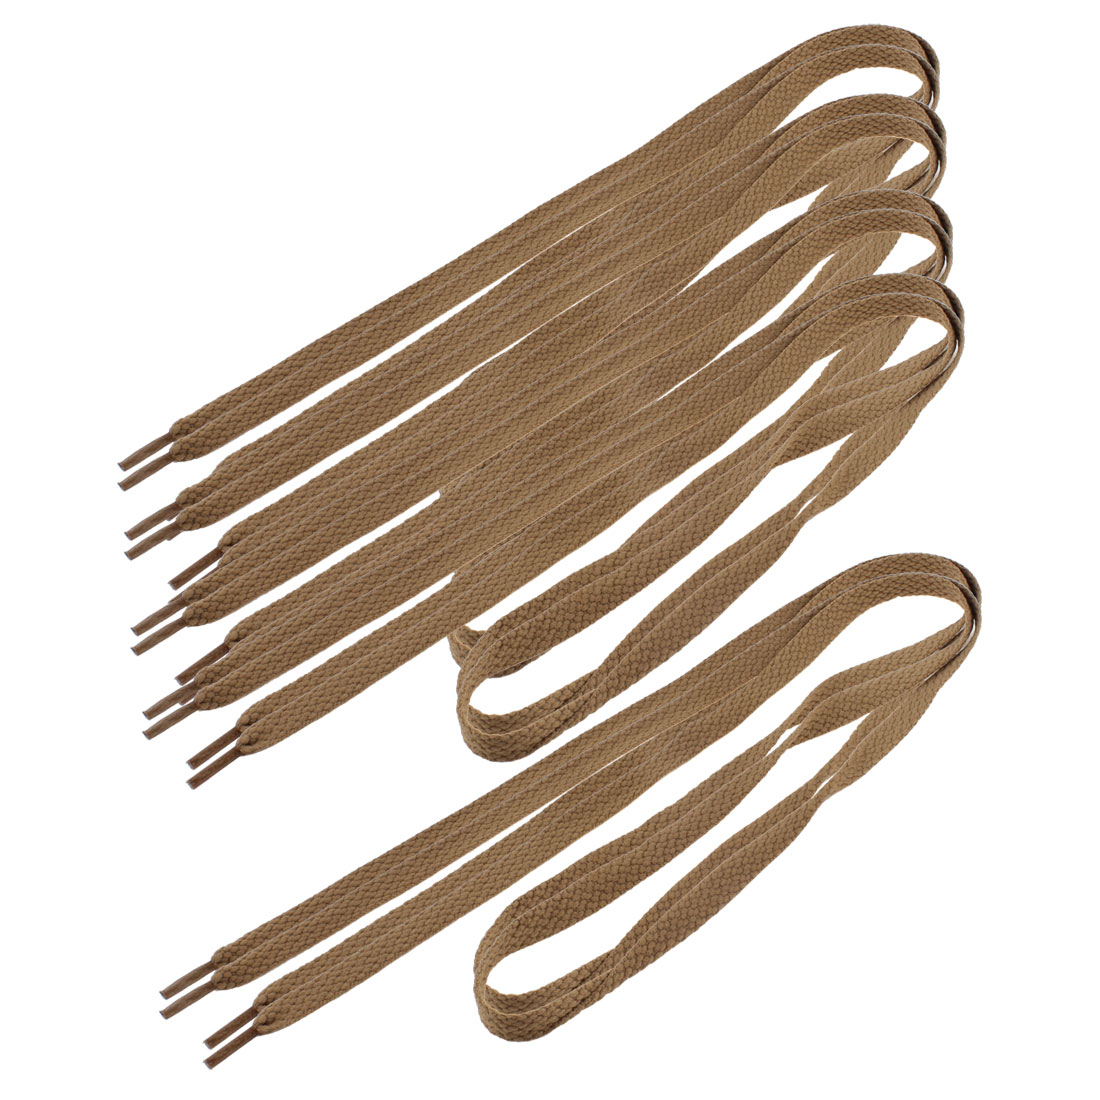 Men-Women-Sneakers-Textured-Flat-Shoelaces-Shoe-Strings-Brown-5-Pairs